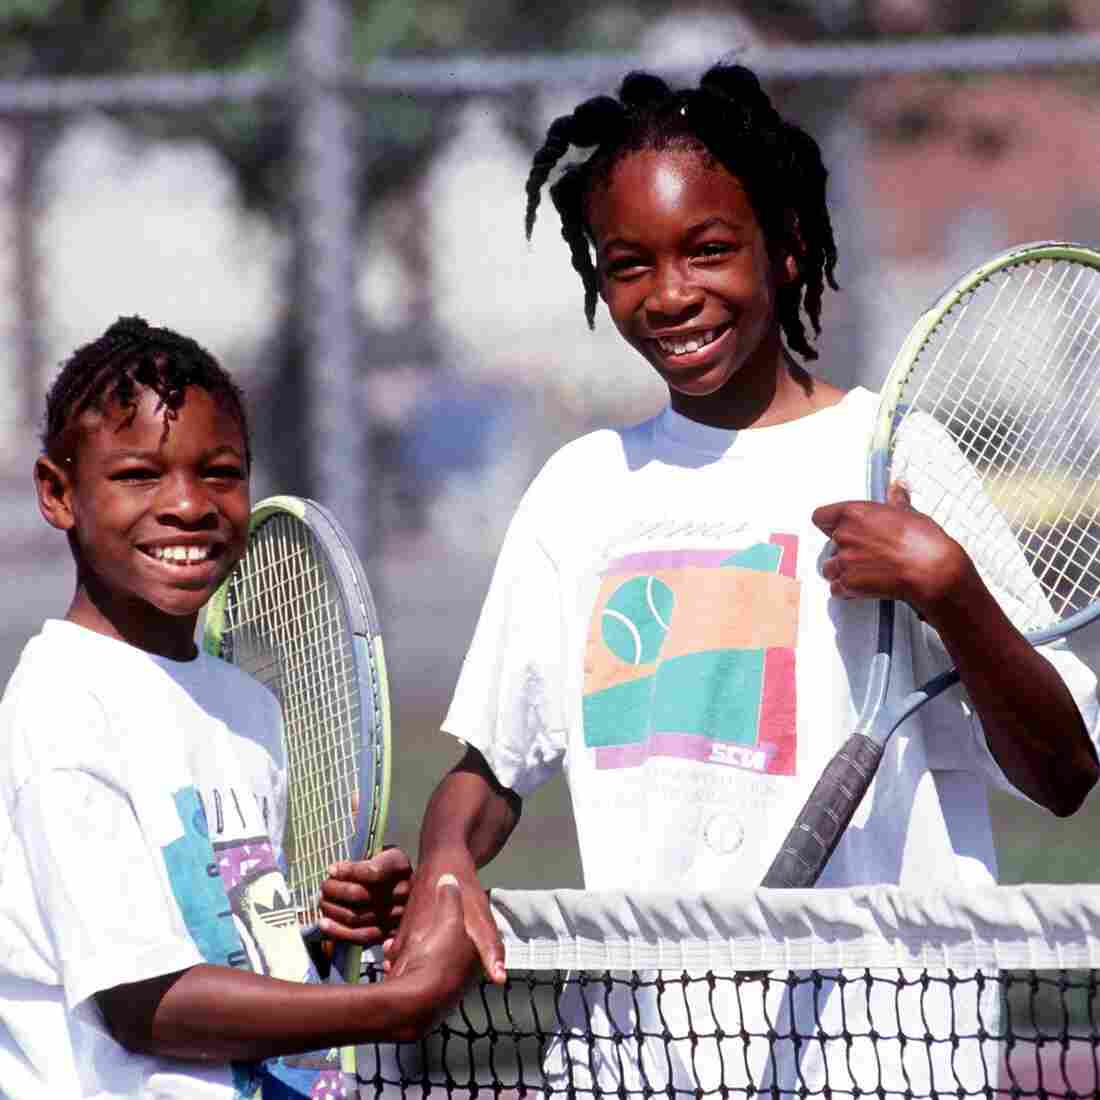 Before Superstardom, Williams Sisters Stunned On Compton's Courts